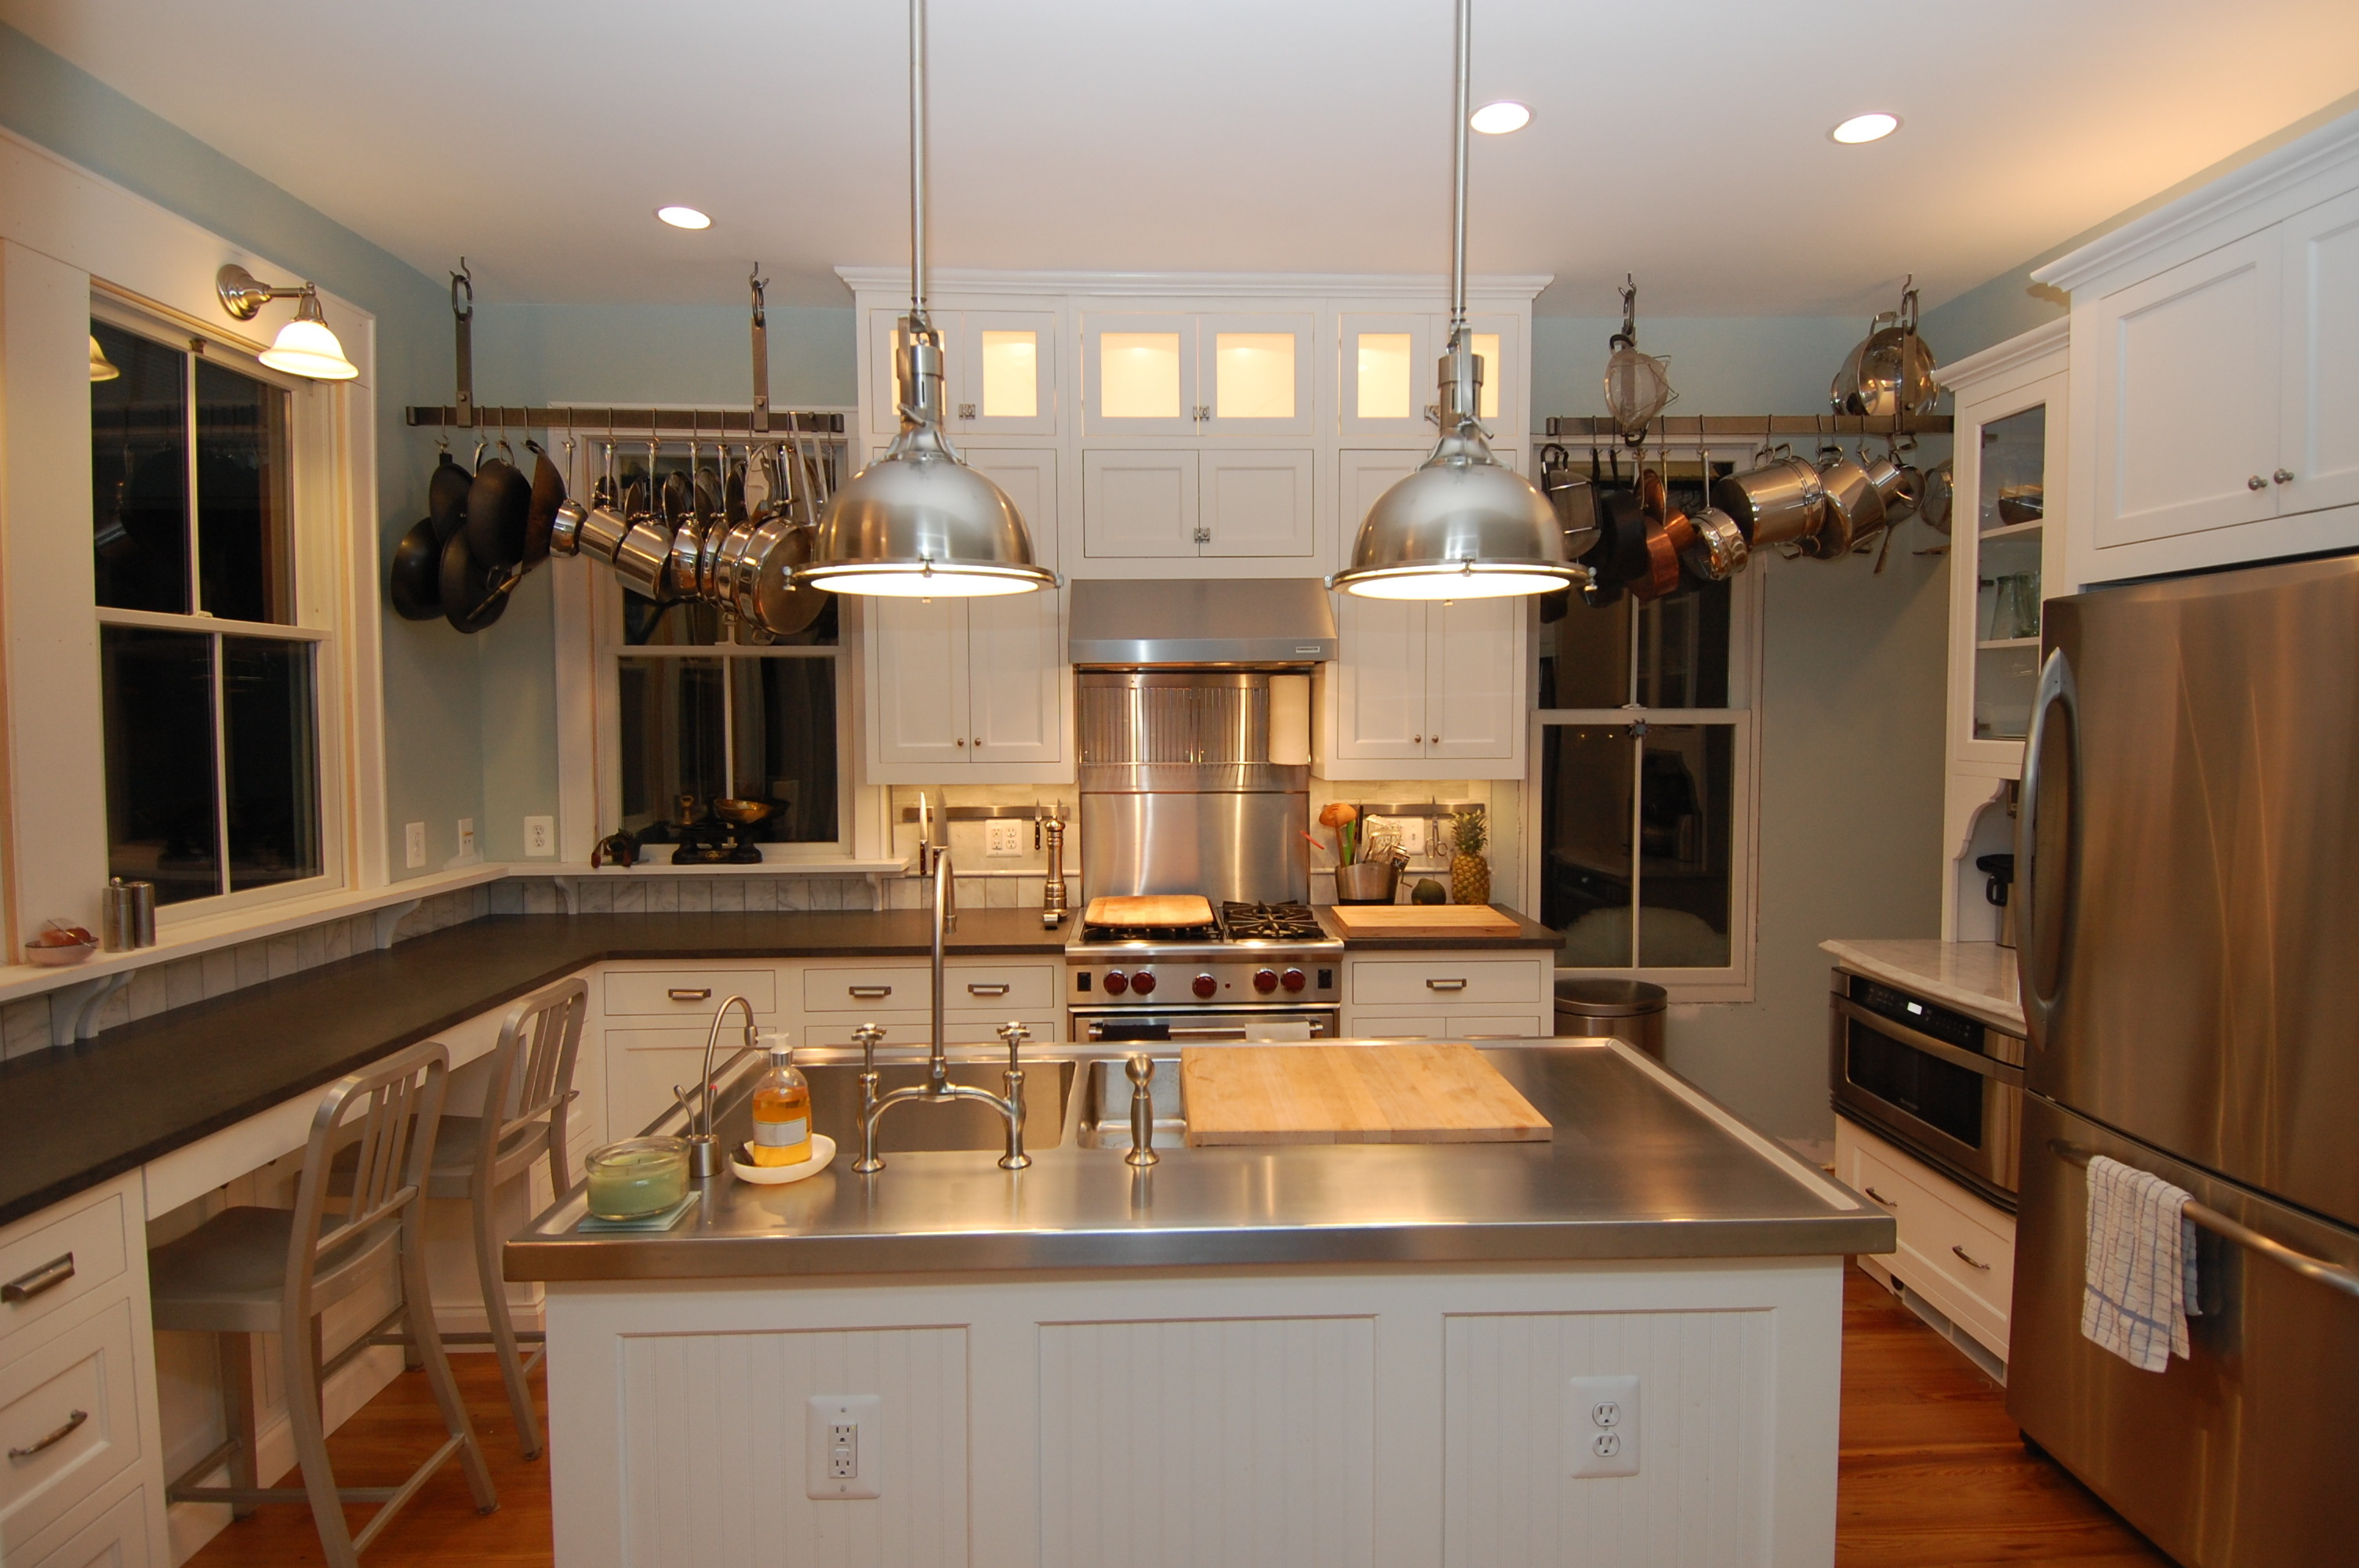 Granite Countertops For Kitchen 10 Reasons To Let Go Of The Granite Obsession Already Huffpost